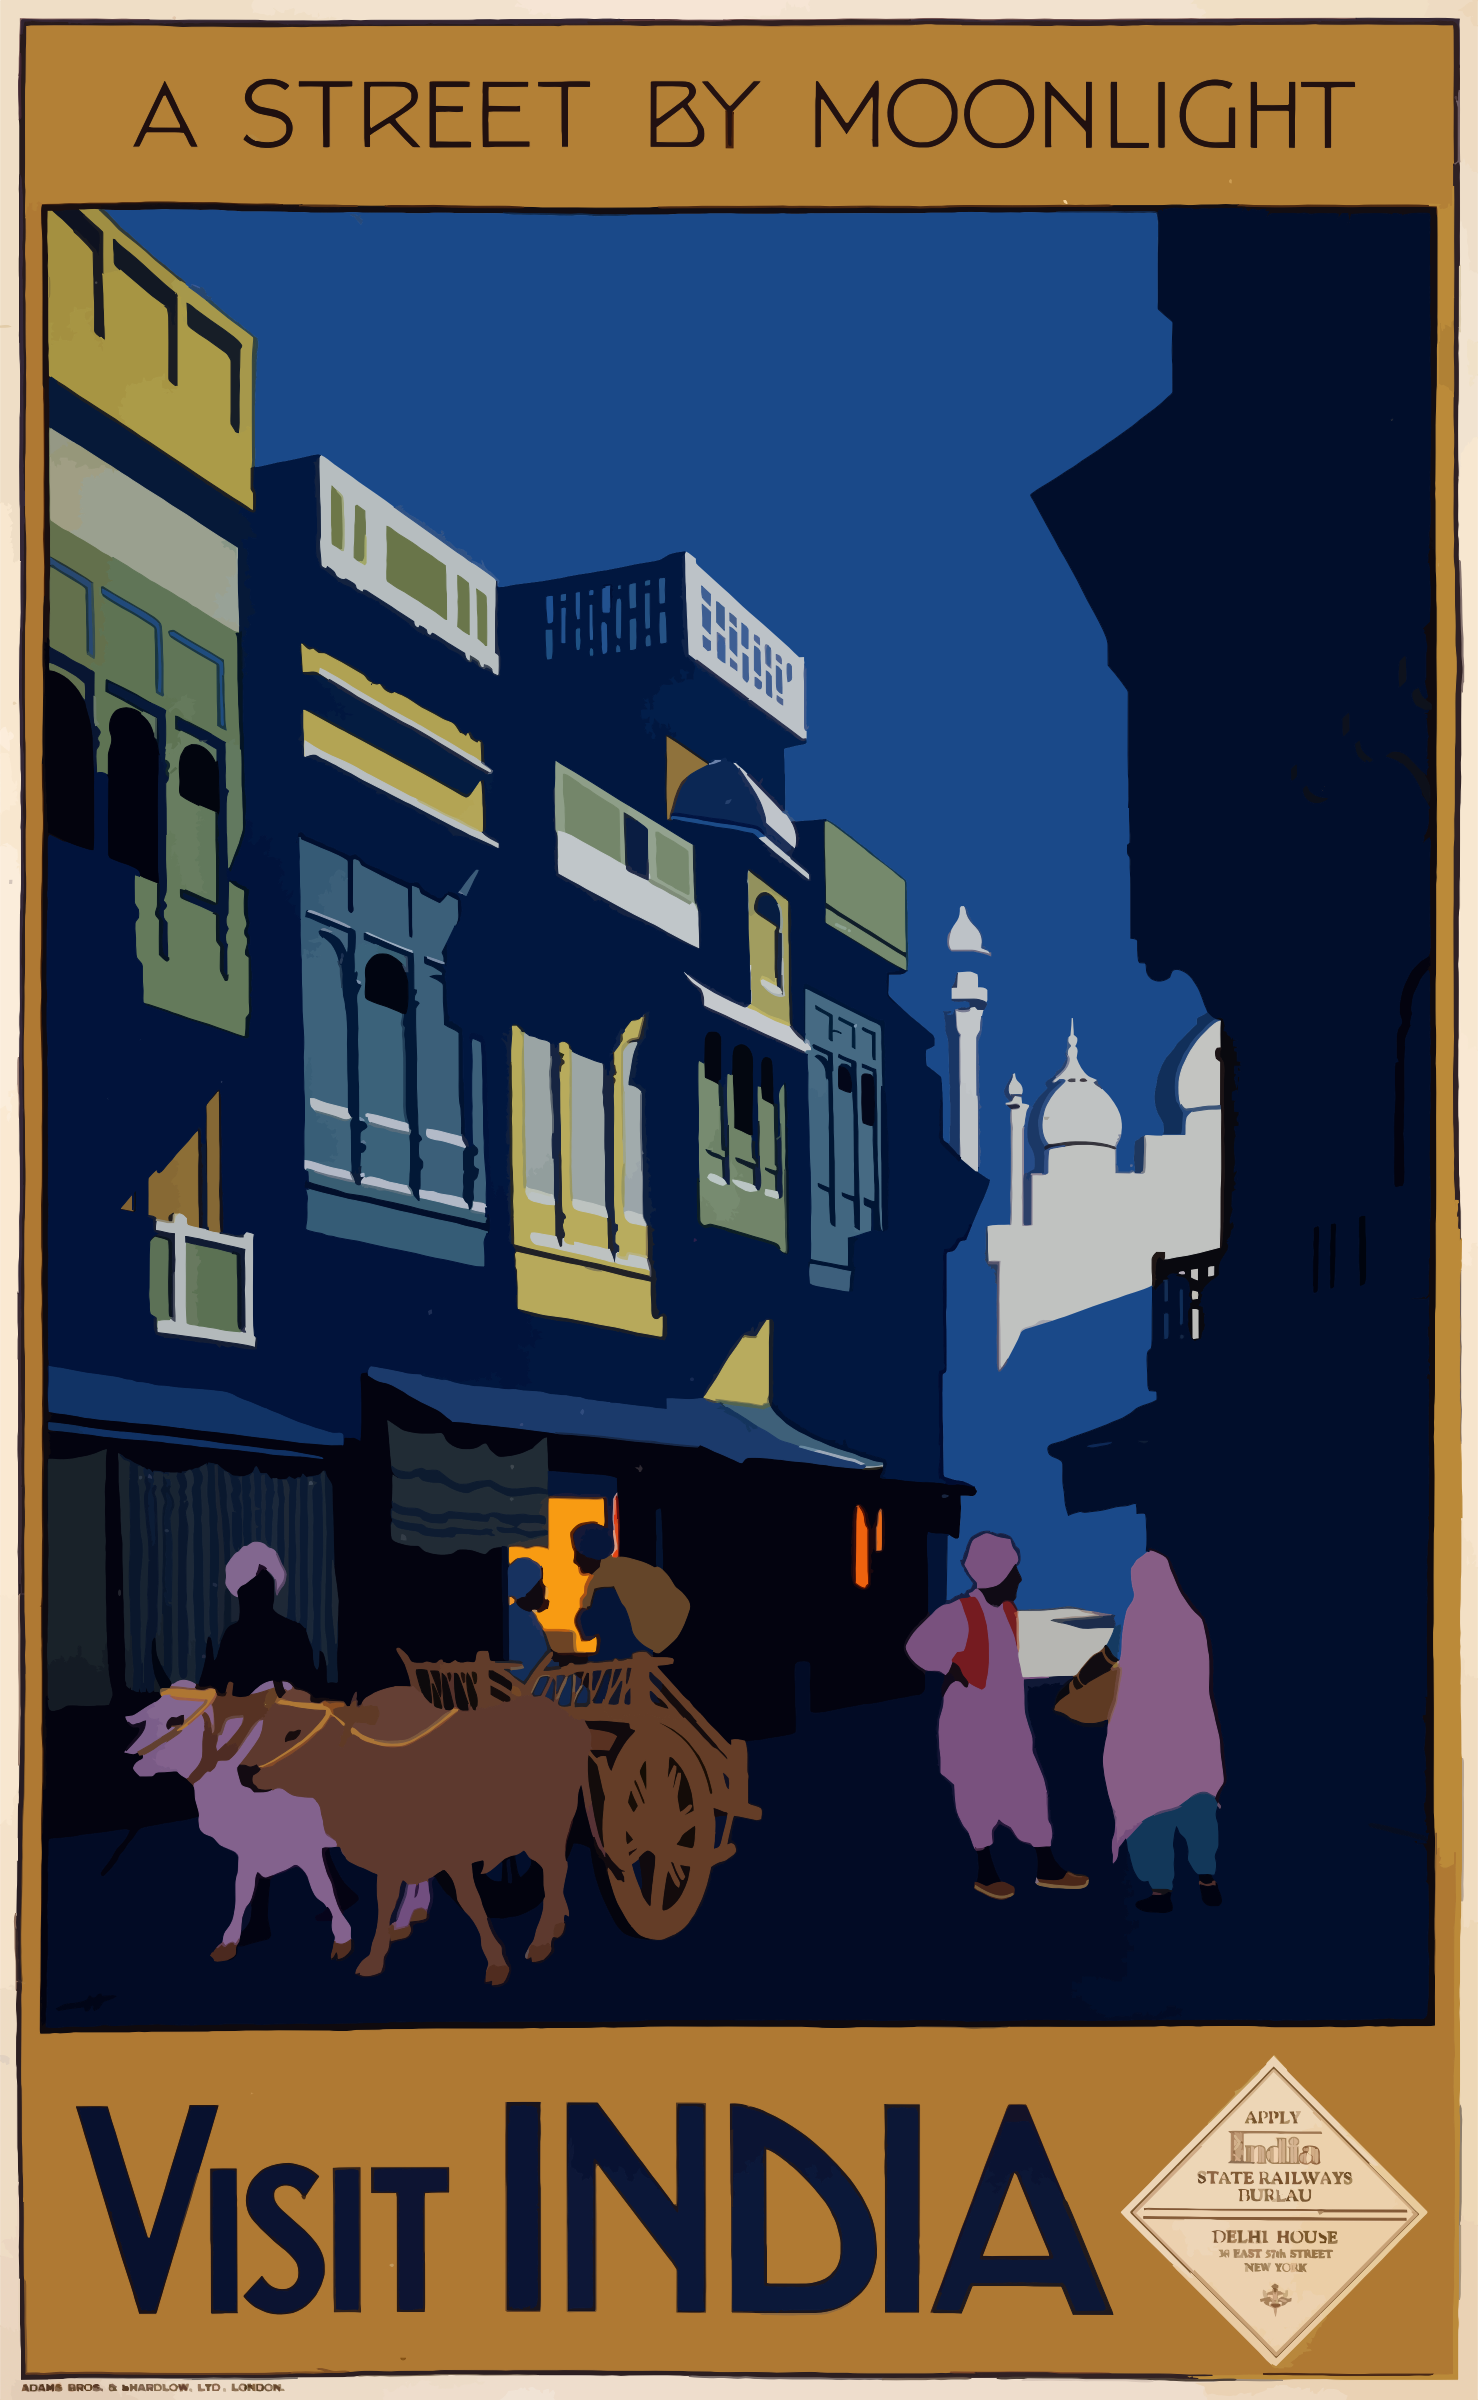 Vintage Travel Poster India A Street By Moonlight by GDJ